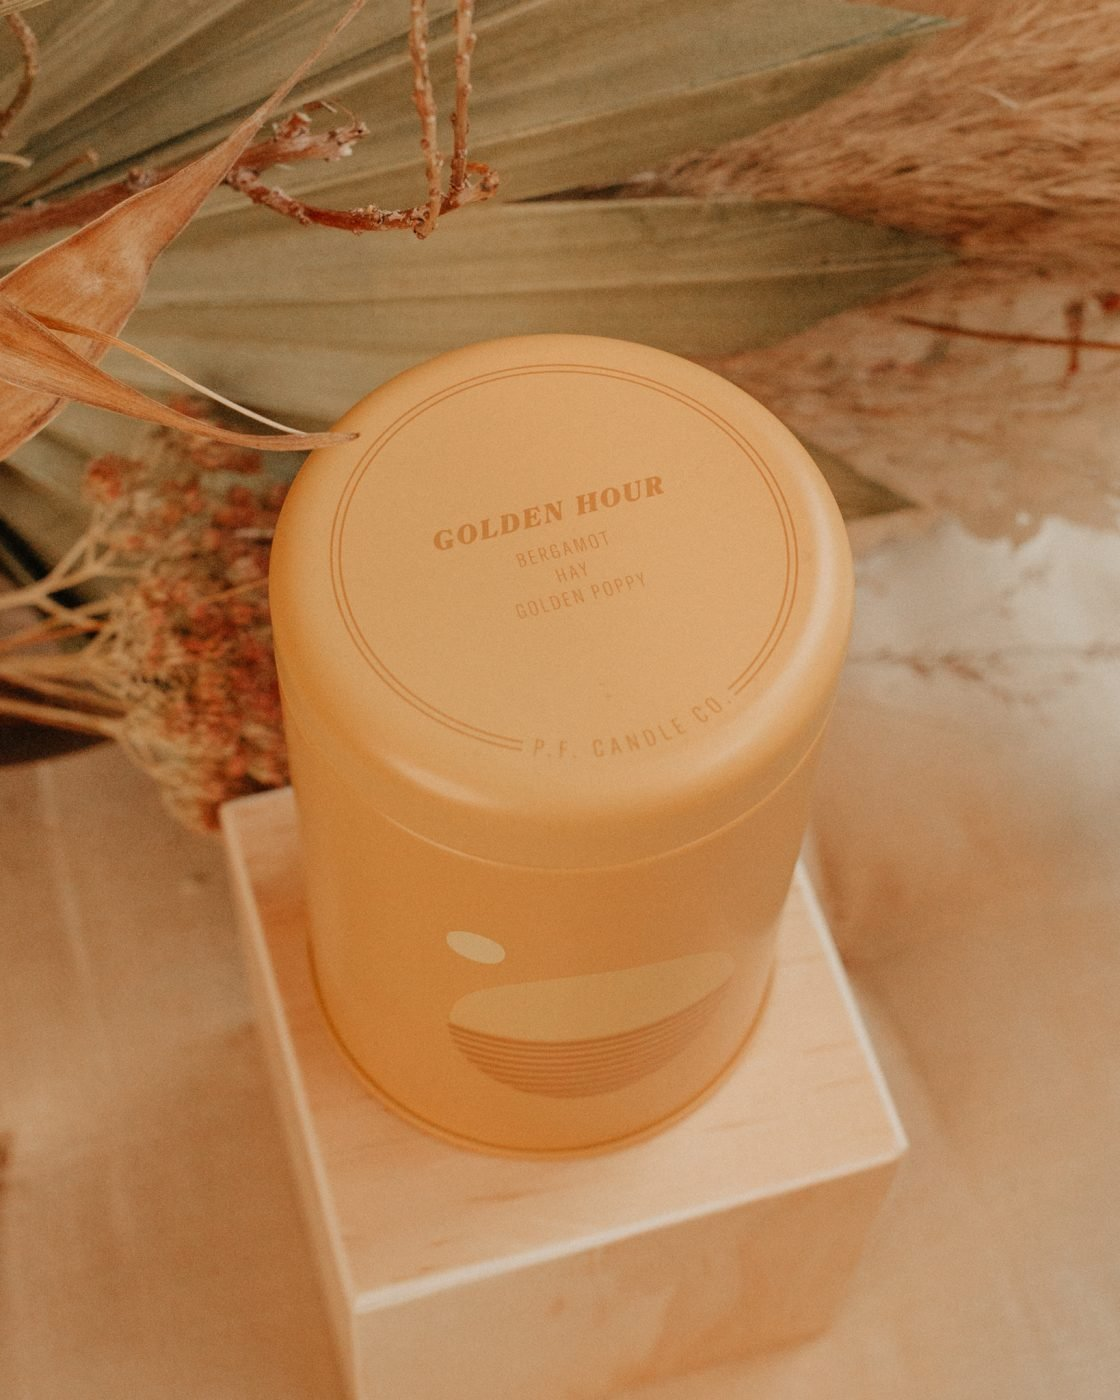 golden hour sunset candle from PF Candle Co